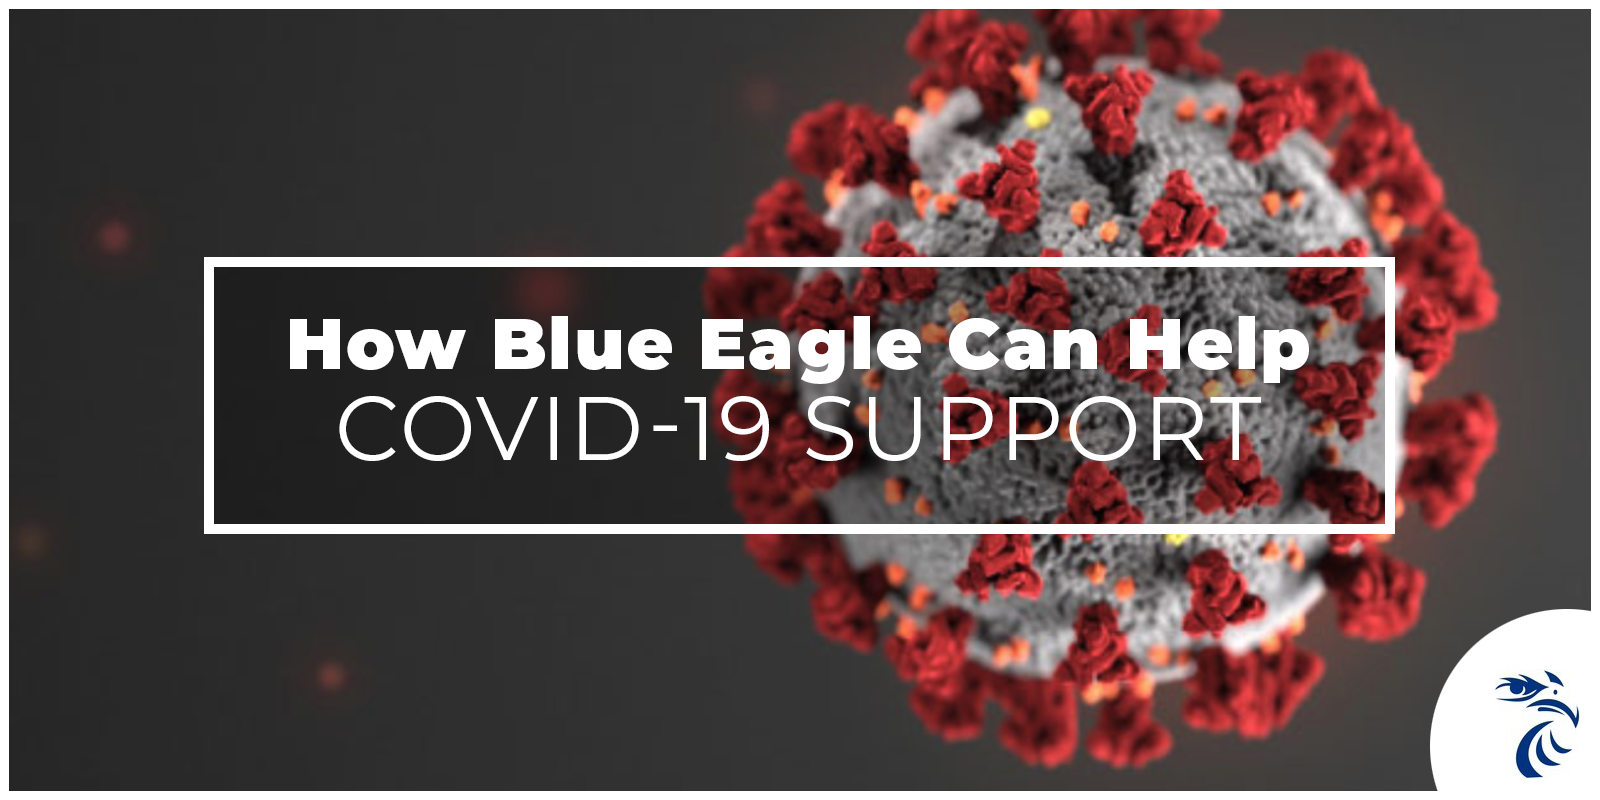 Picture of virus with text: How Blue Eagle Can Help: COVID-19 Support